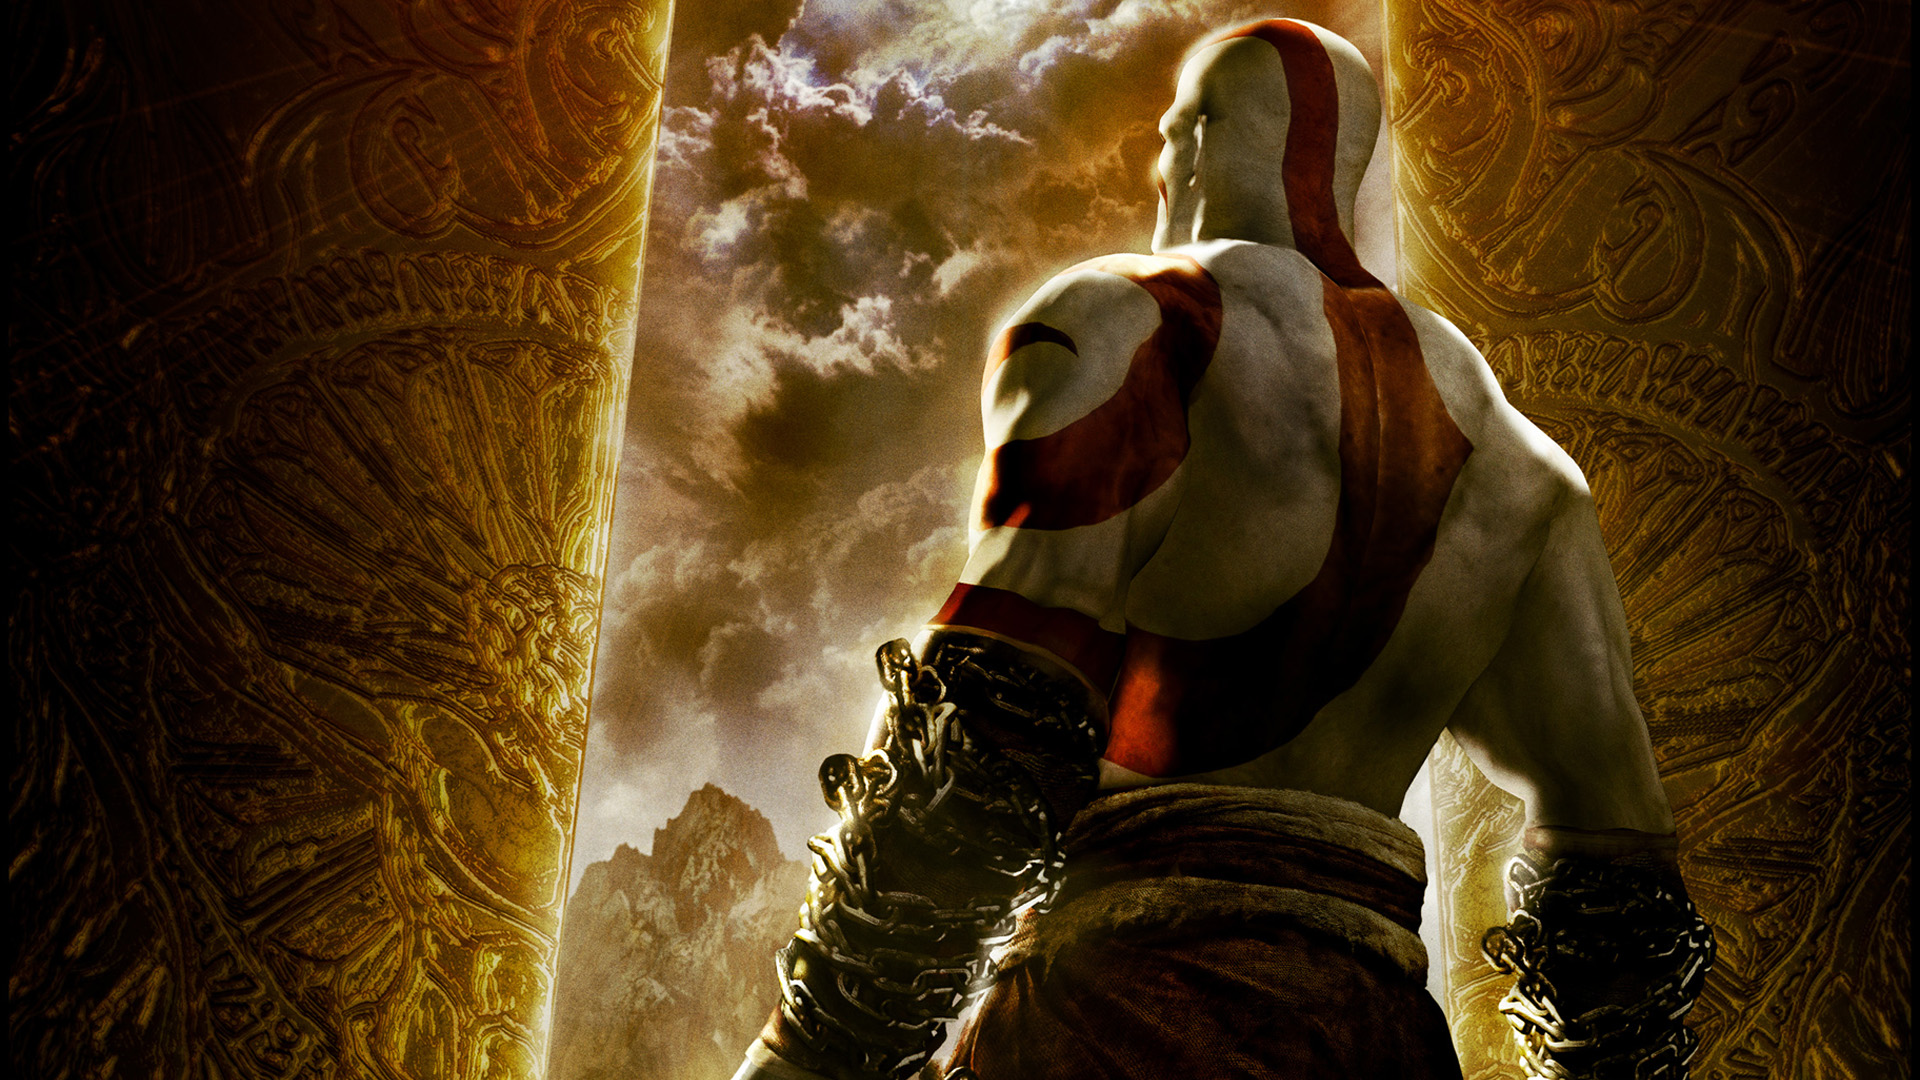 The Ultimate God of War Wallpapers